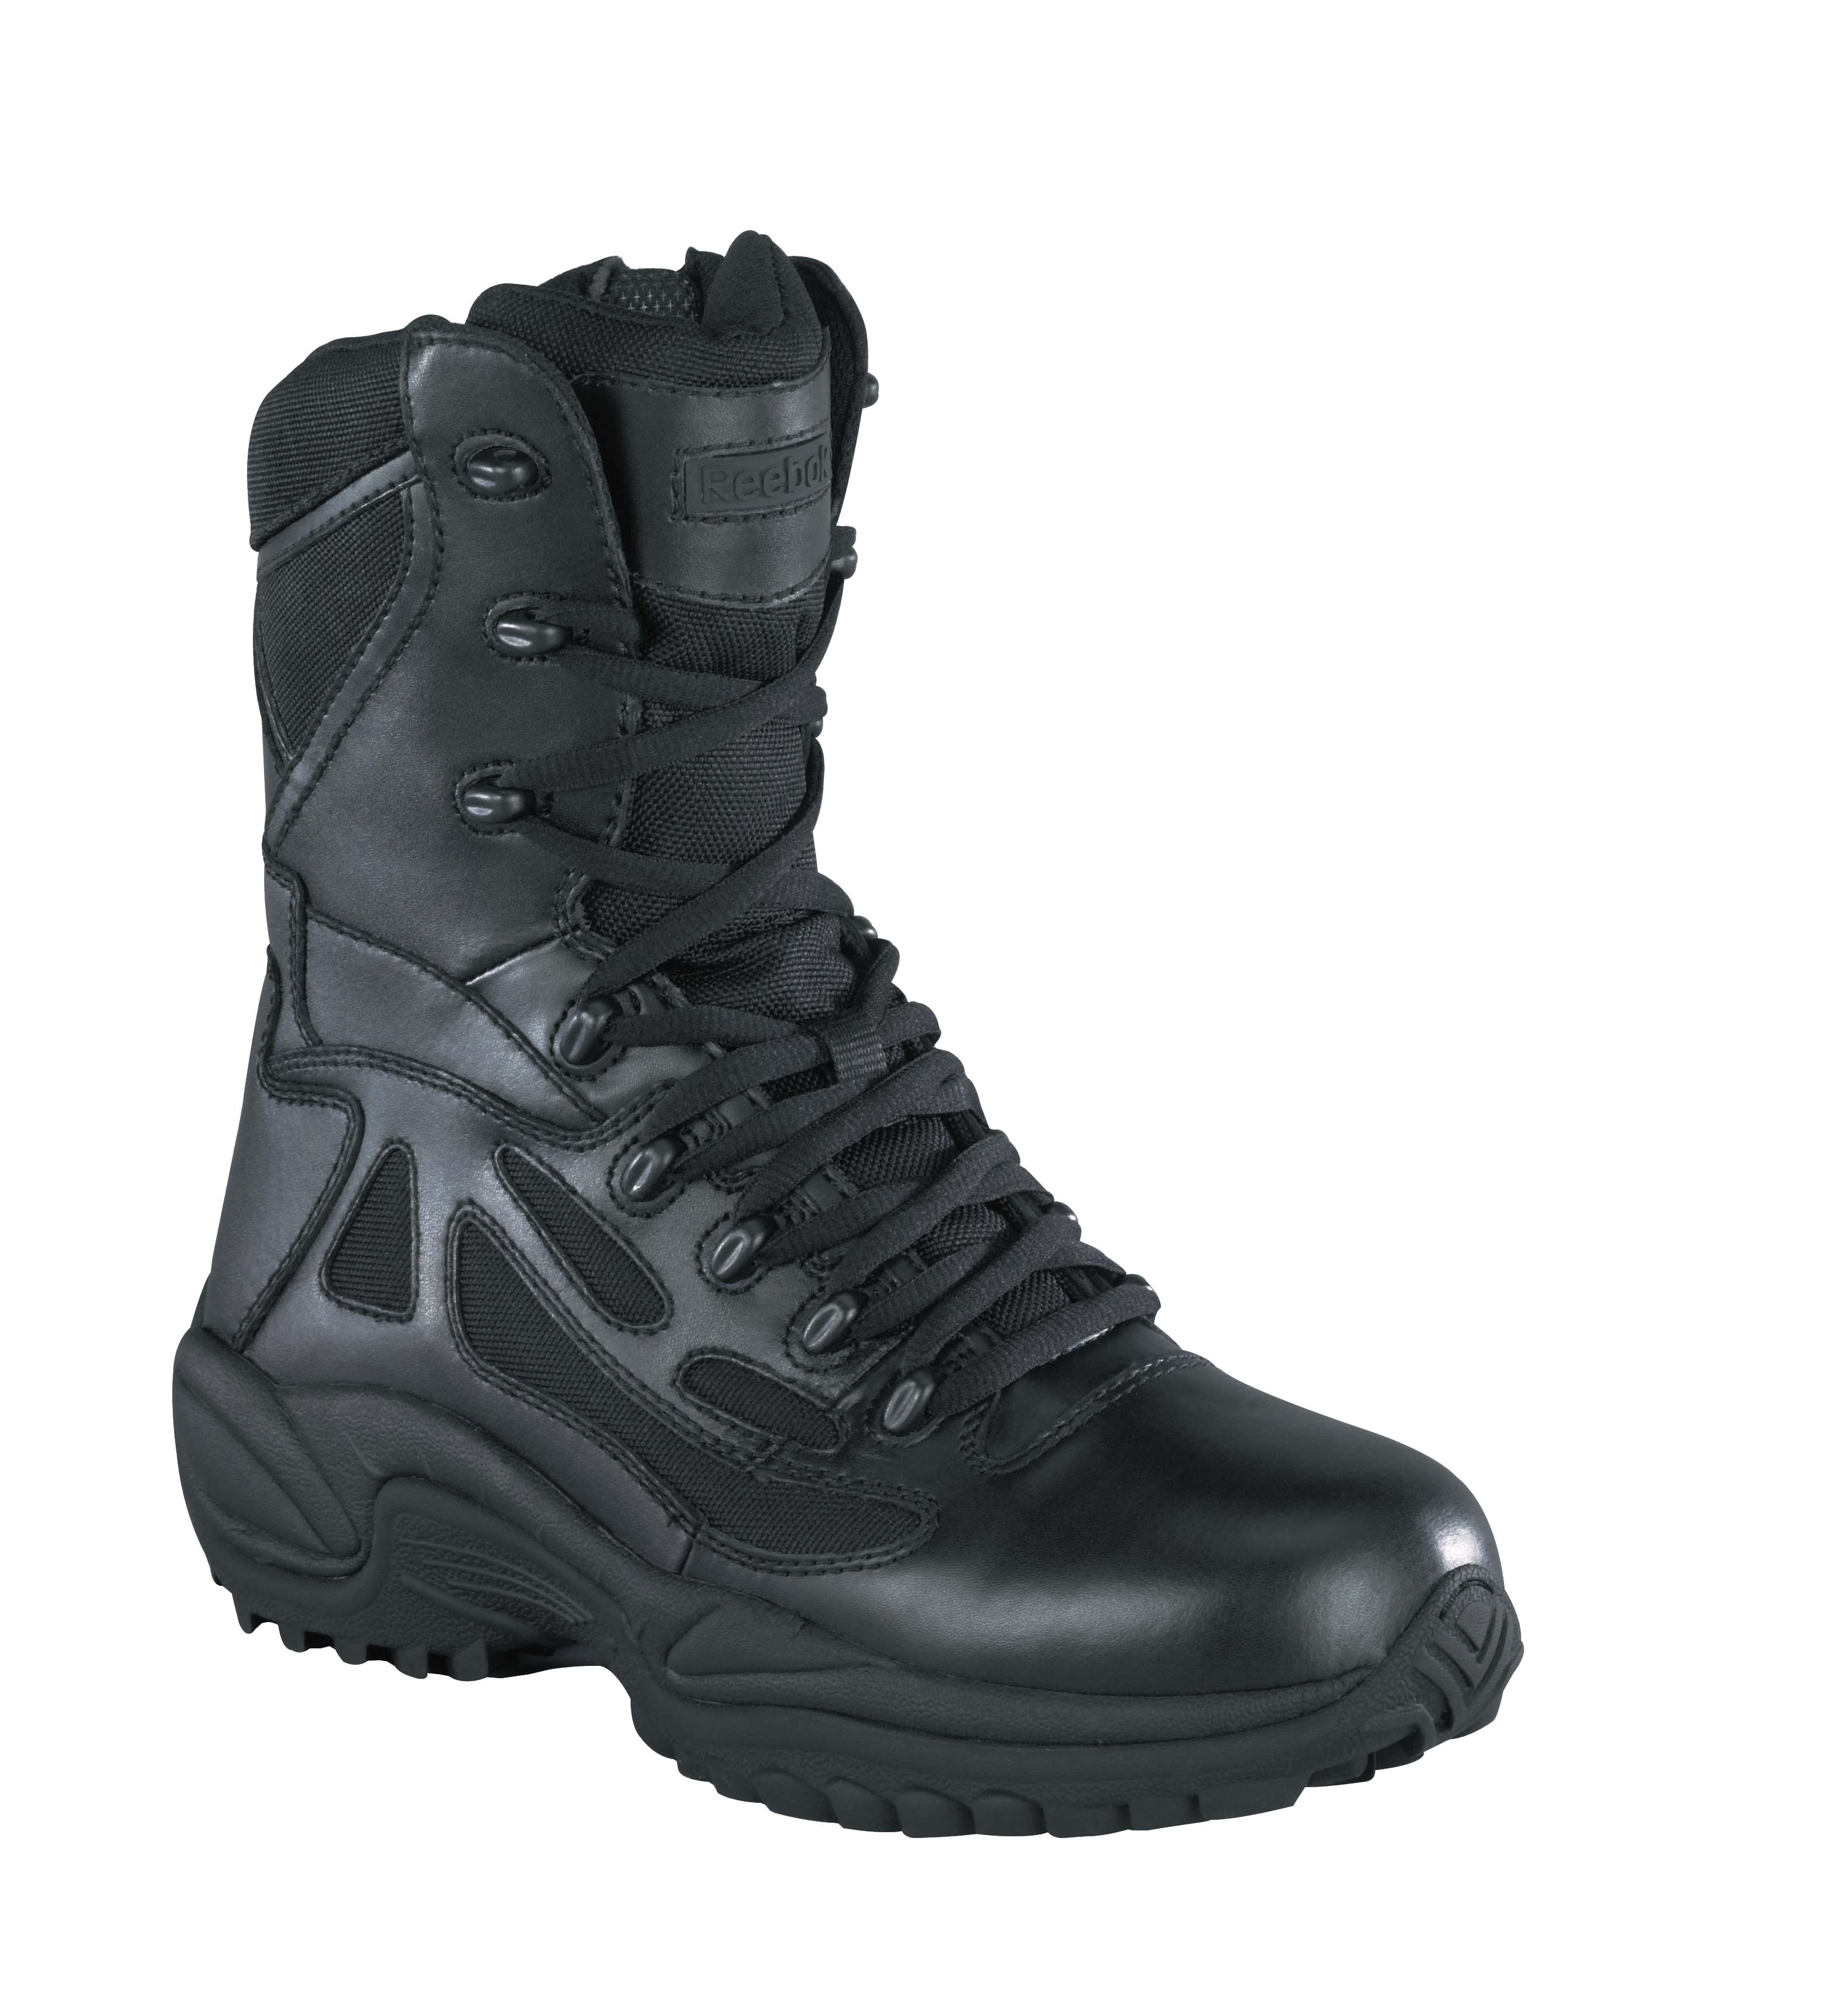 reebok womens black leather tactical boots rapid response